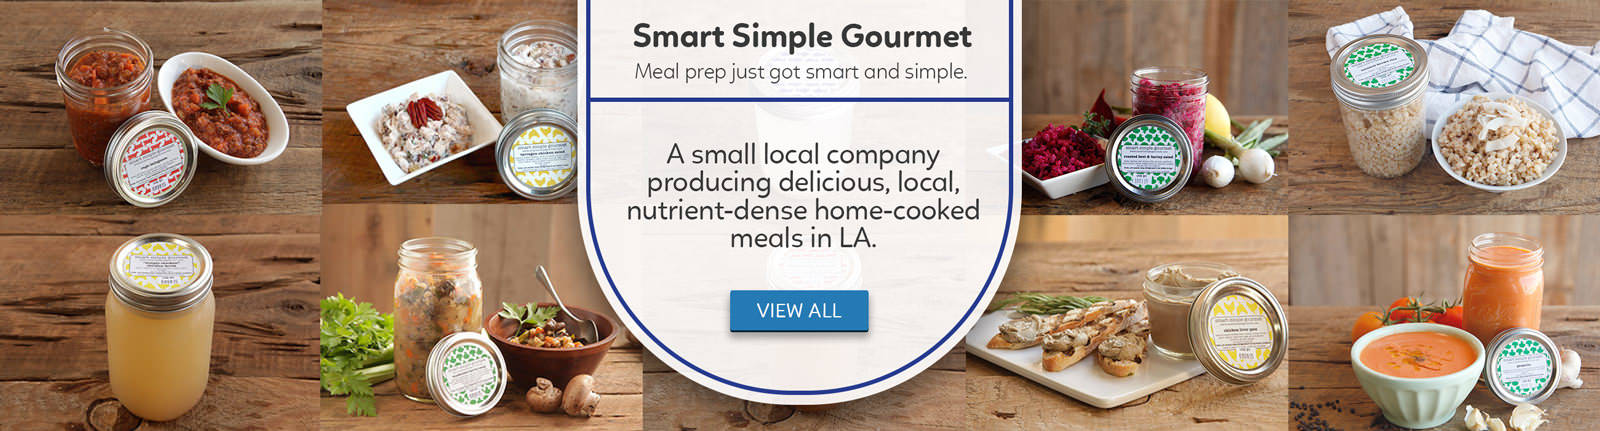 Smart Simple Gourmet